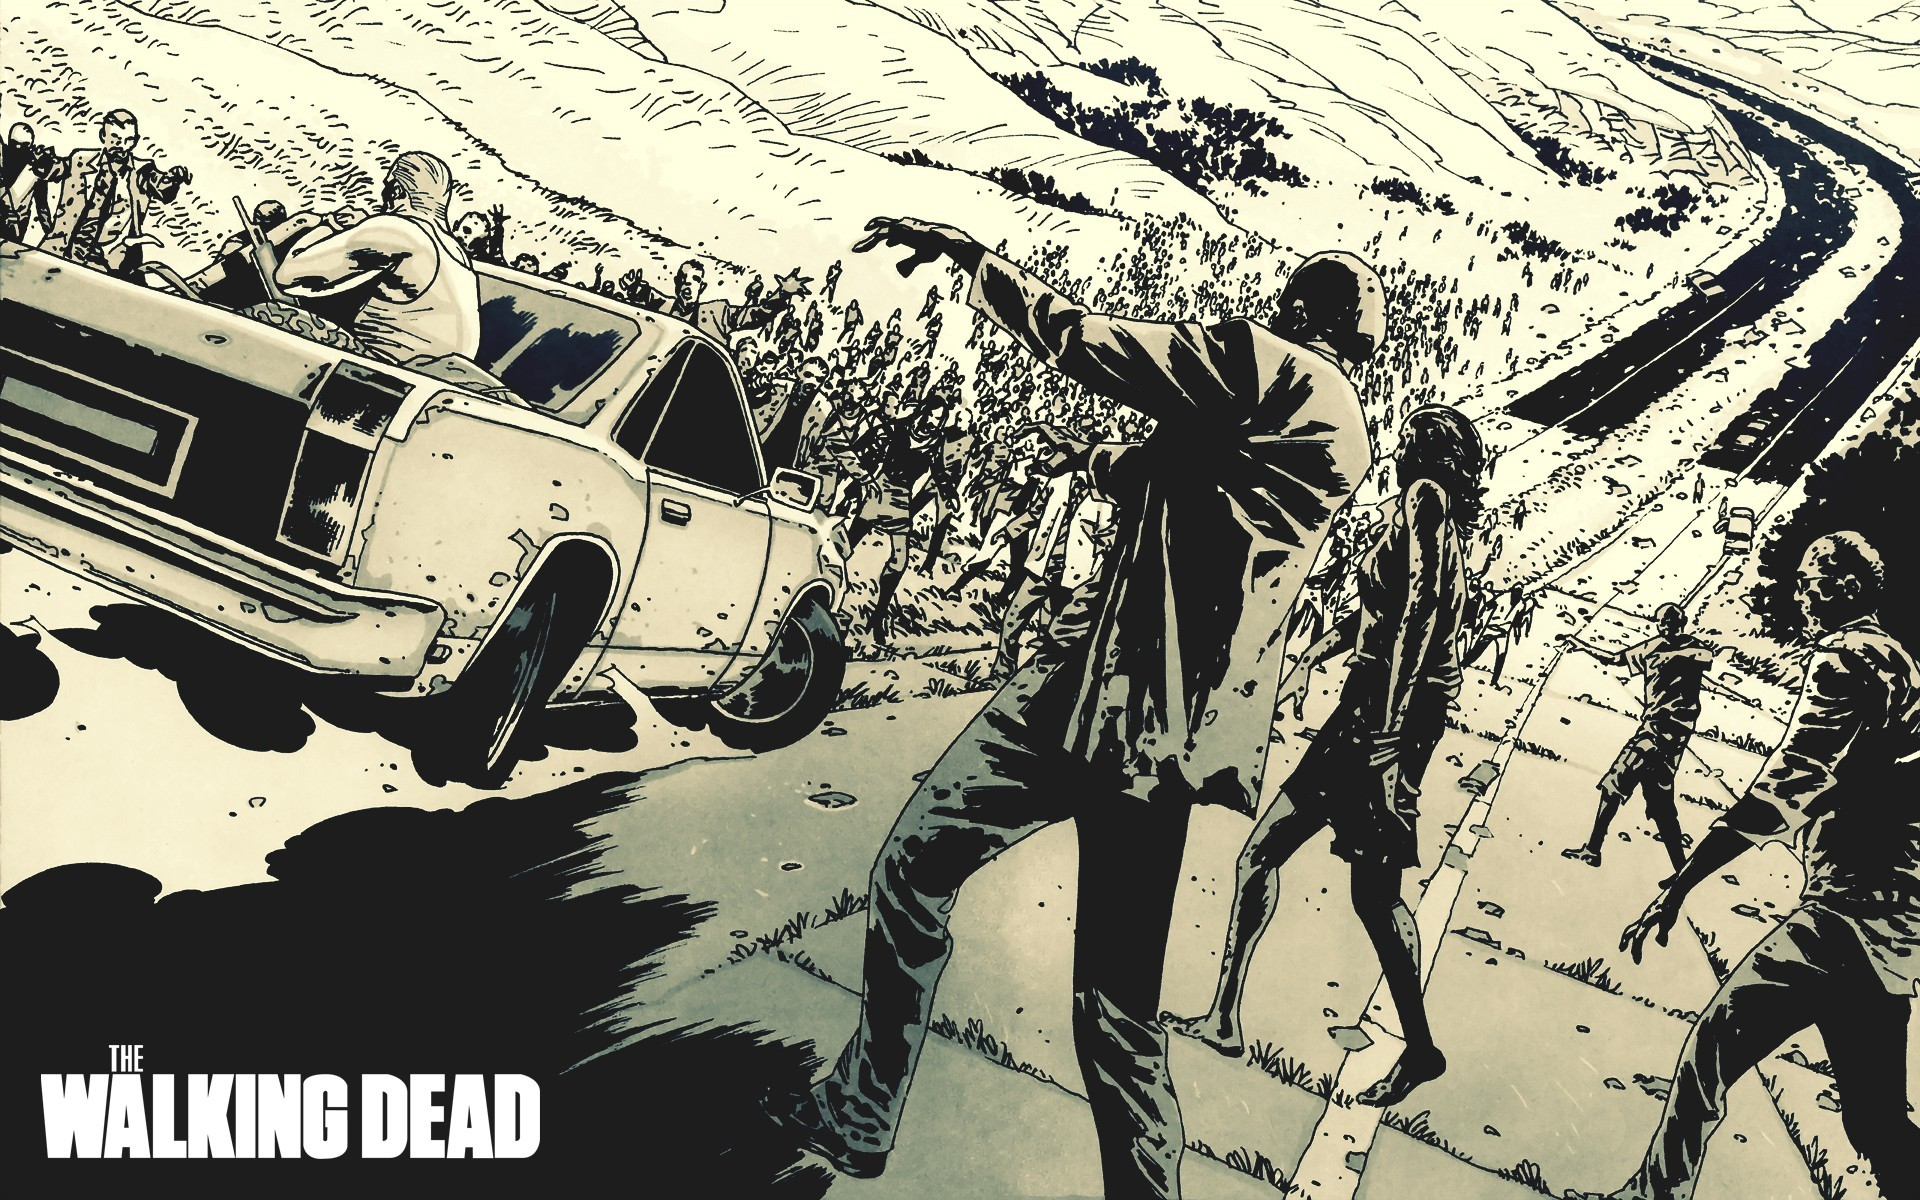 walking dead comic wallpaper ·①